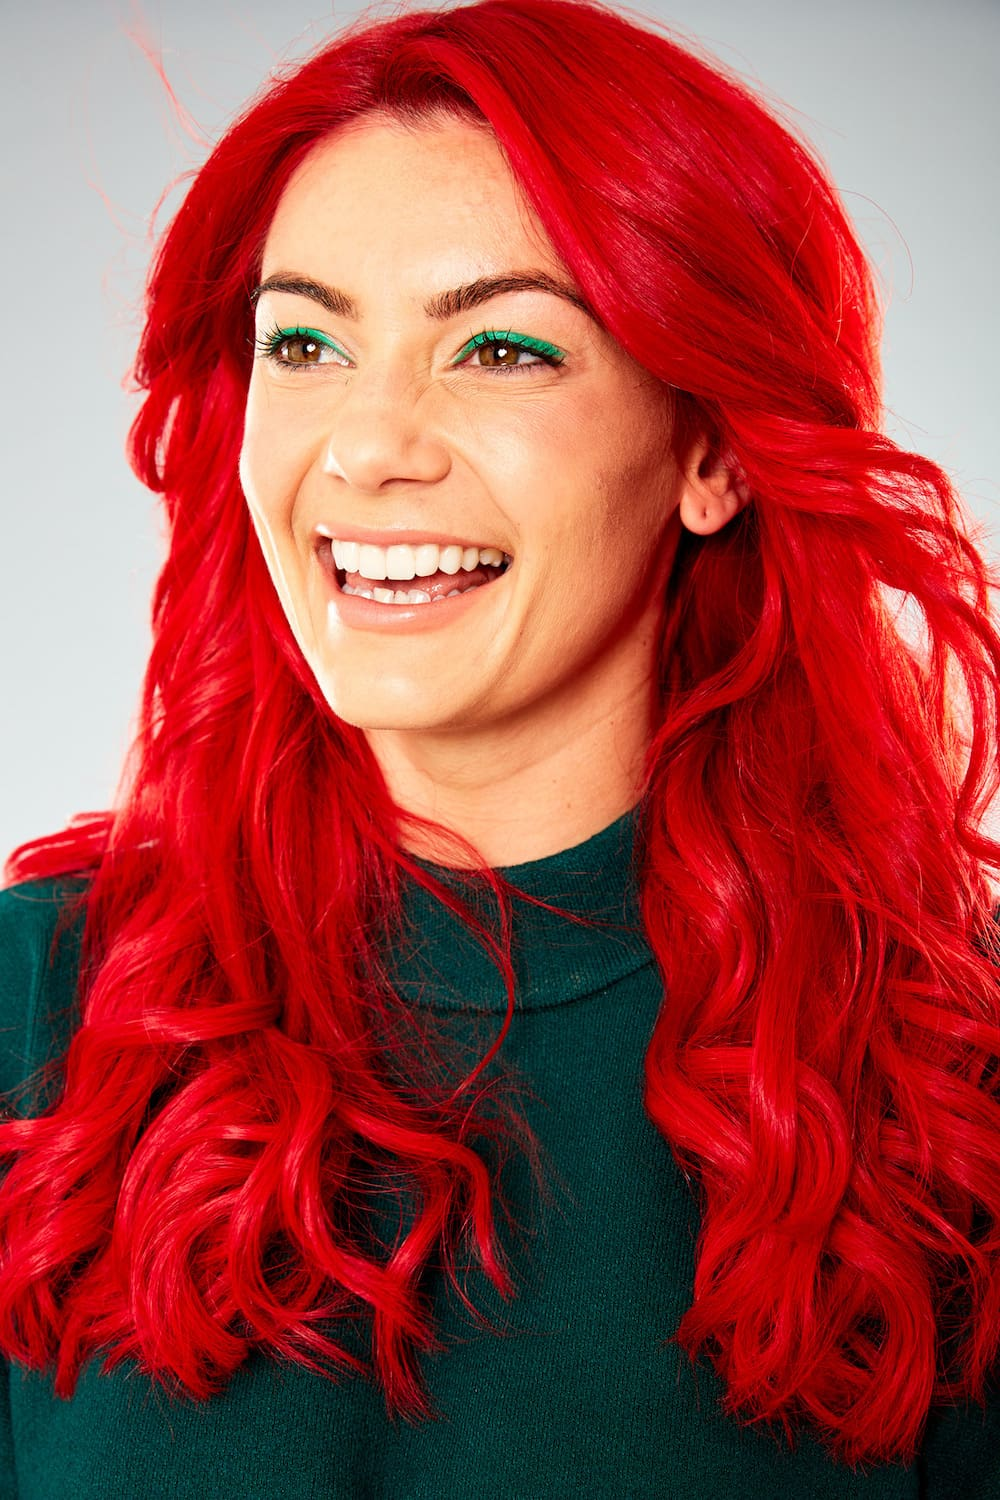 Dianne Buswell smiling, looking away from the camera